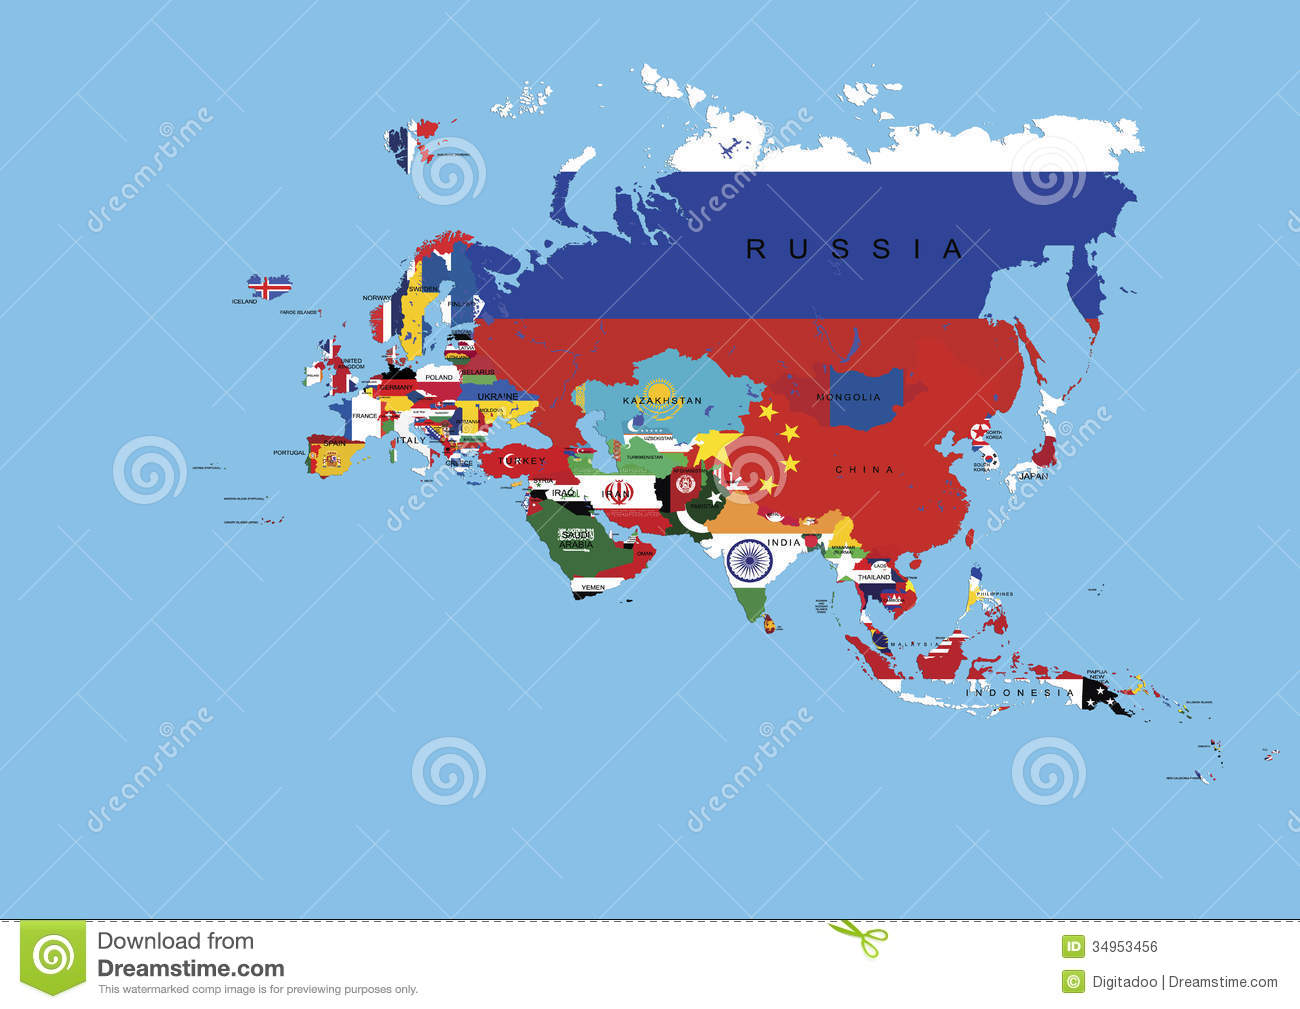 Royalty Free Stock Image  Europe Asia Flags Background Map And State